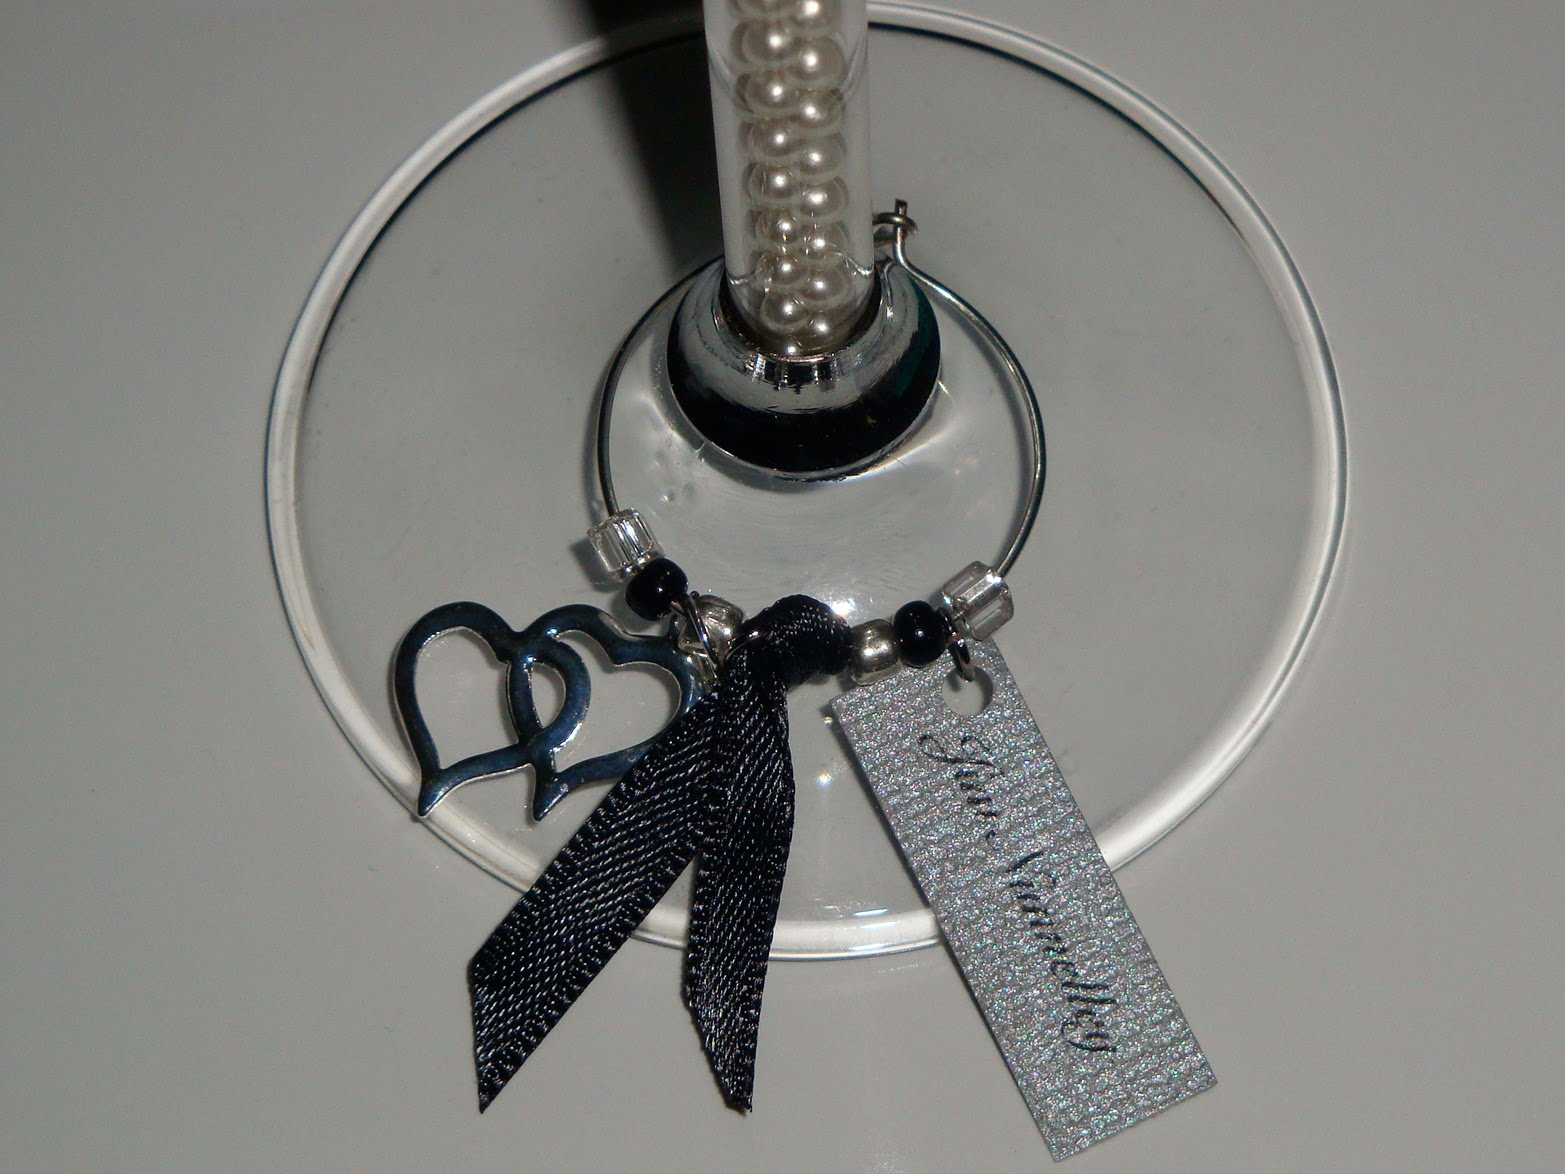 miss barrettes blogs d i y personalized wine charms check